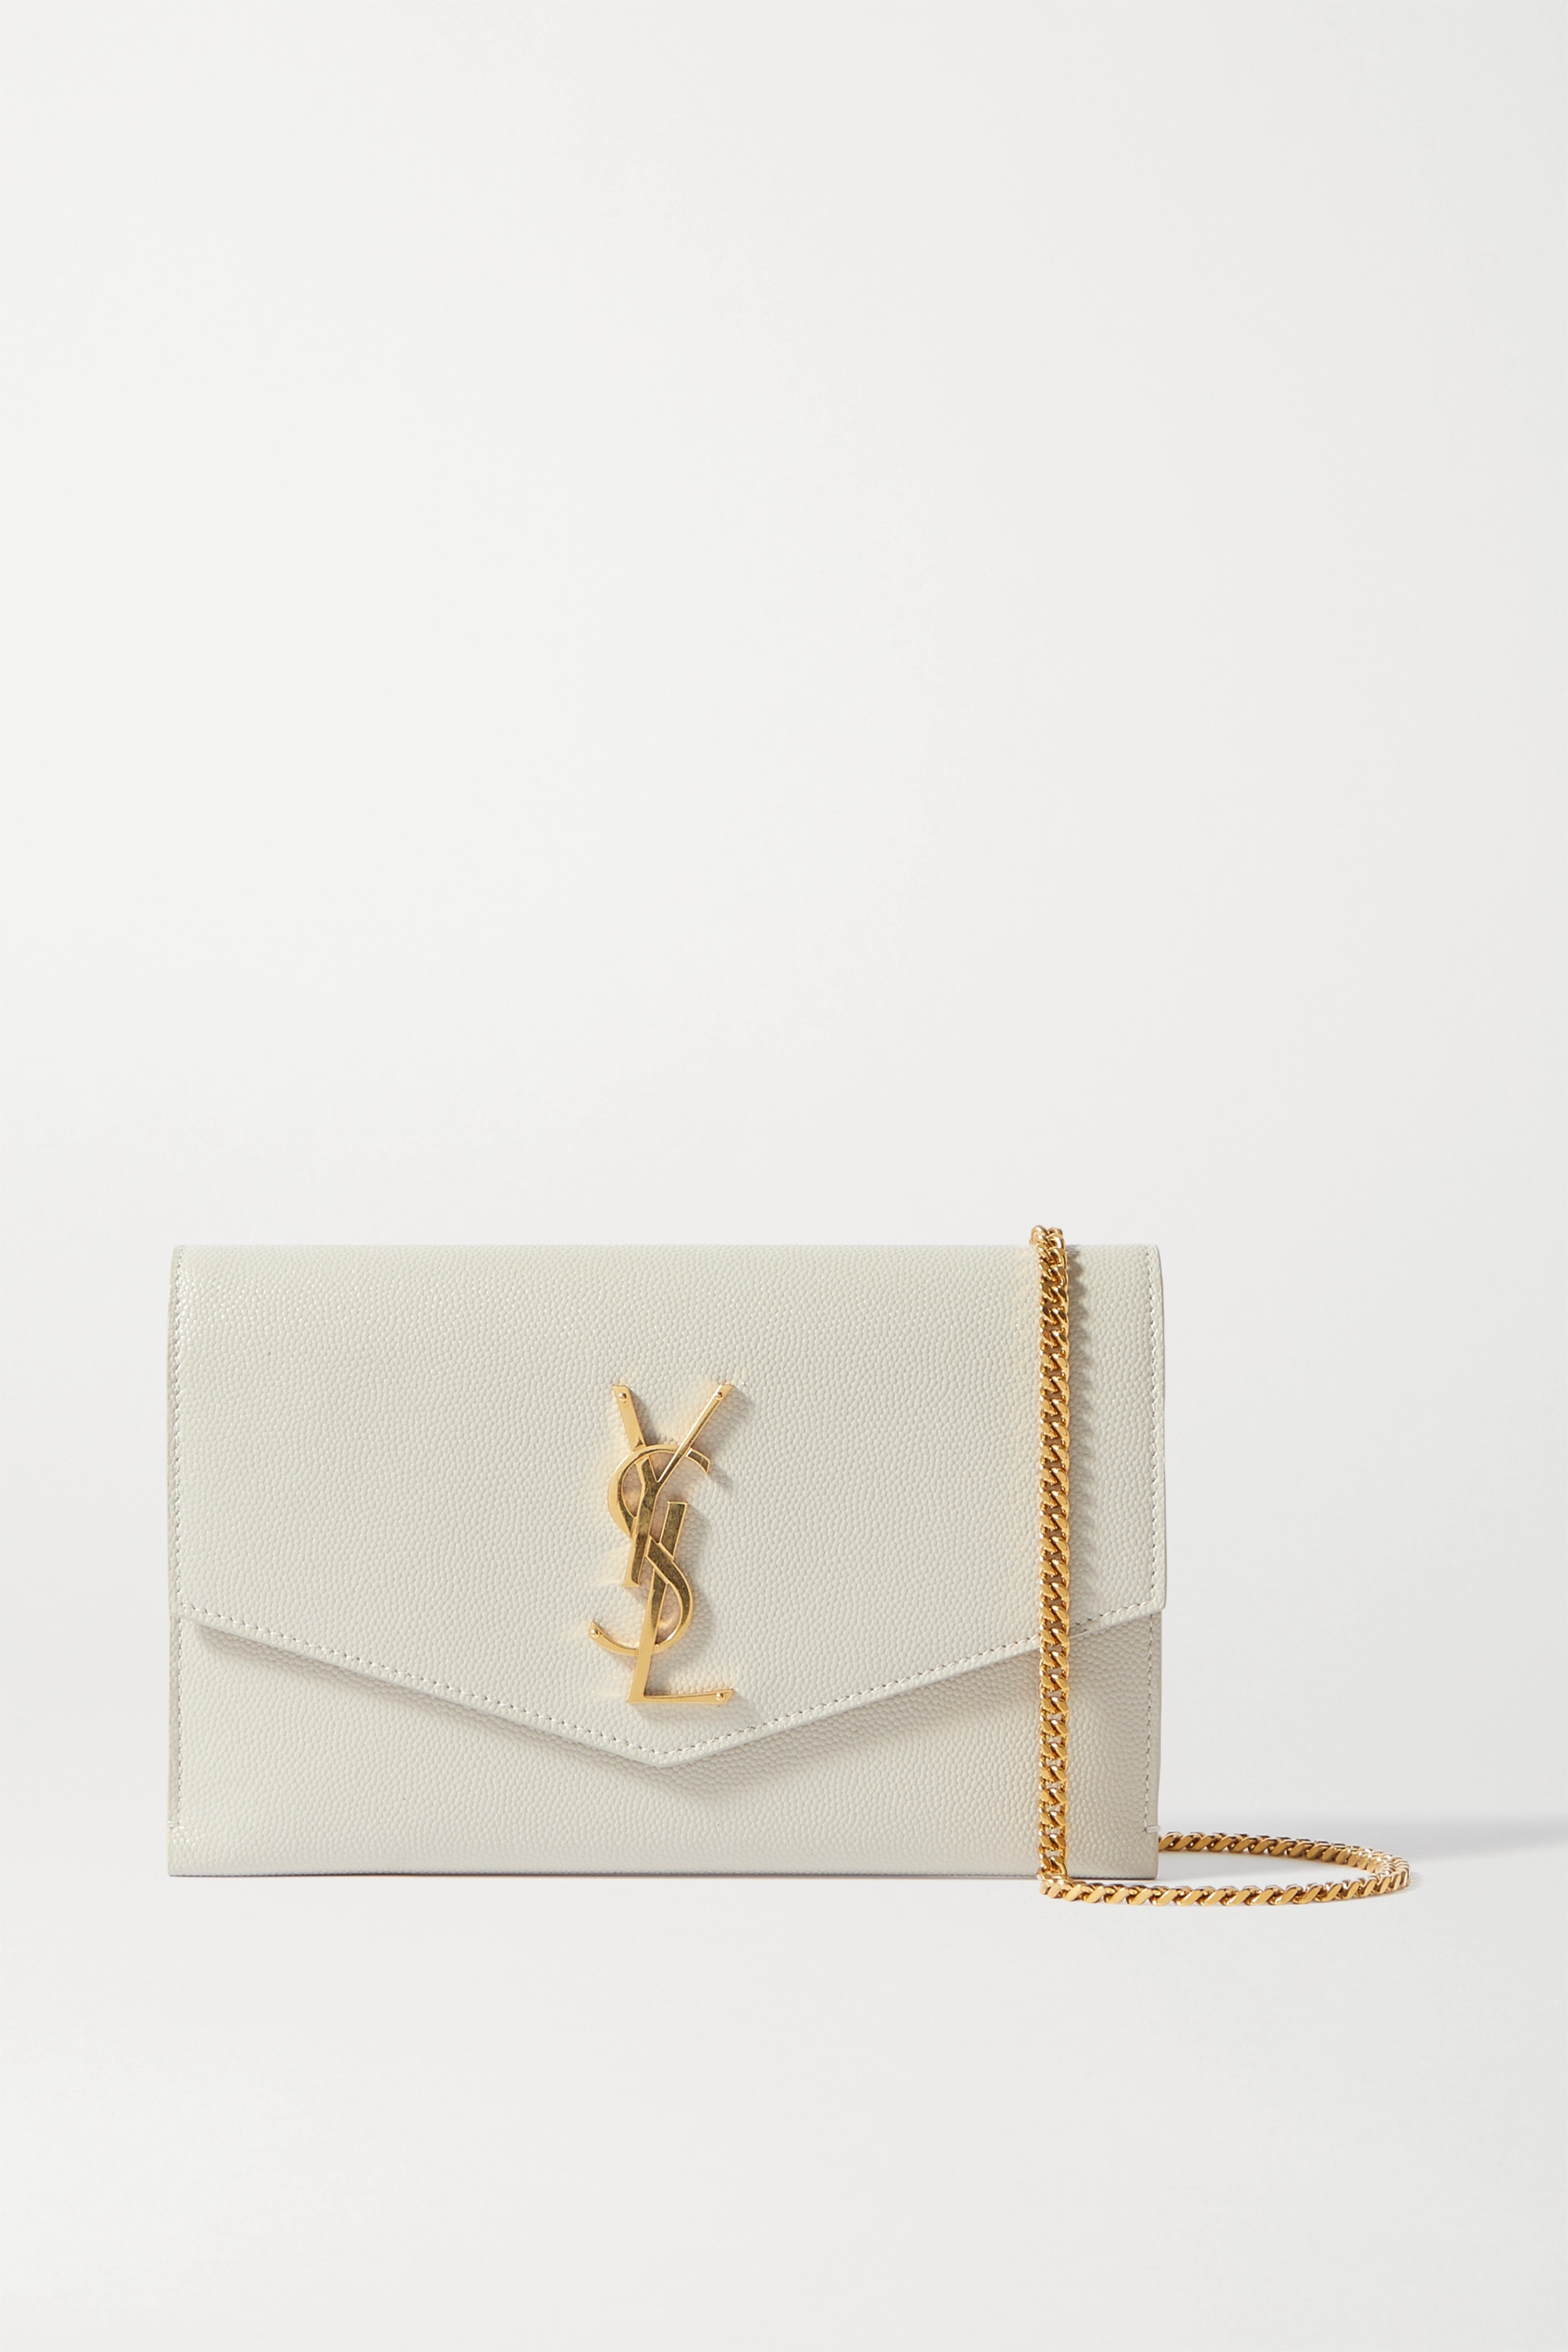 SAINT LAURENT Uptown textured-leather shoulder bag